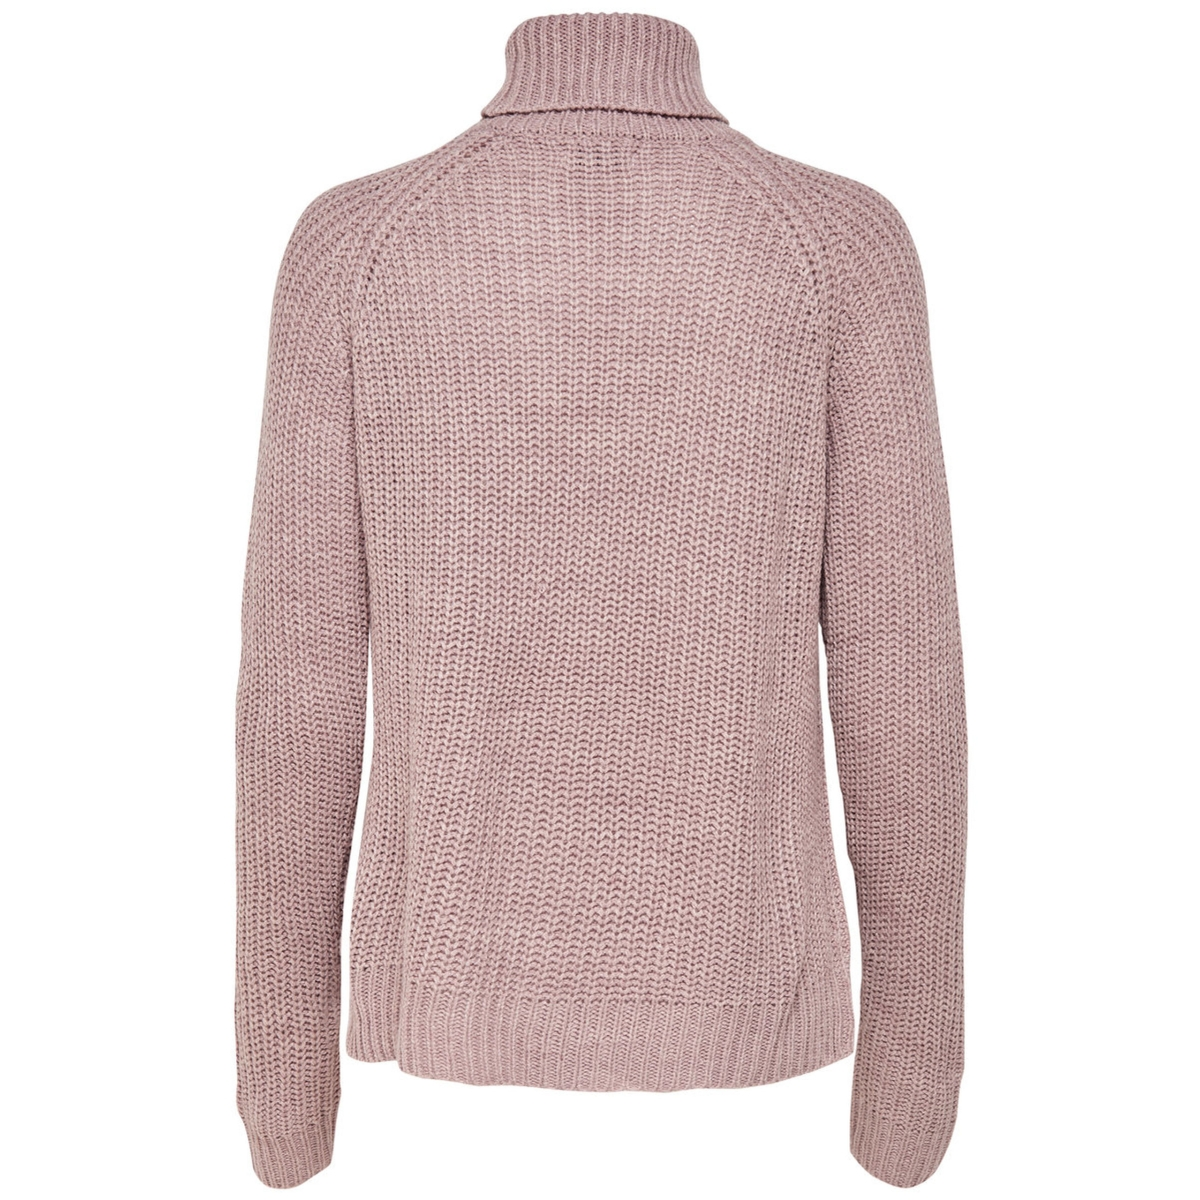 jdyjusty l/s pullover knt 15138662 jacqueline de yong trui rose taupe